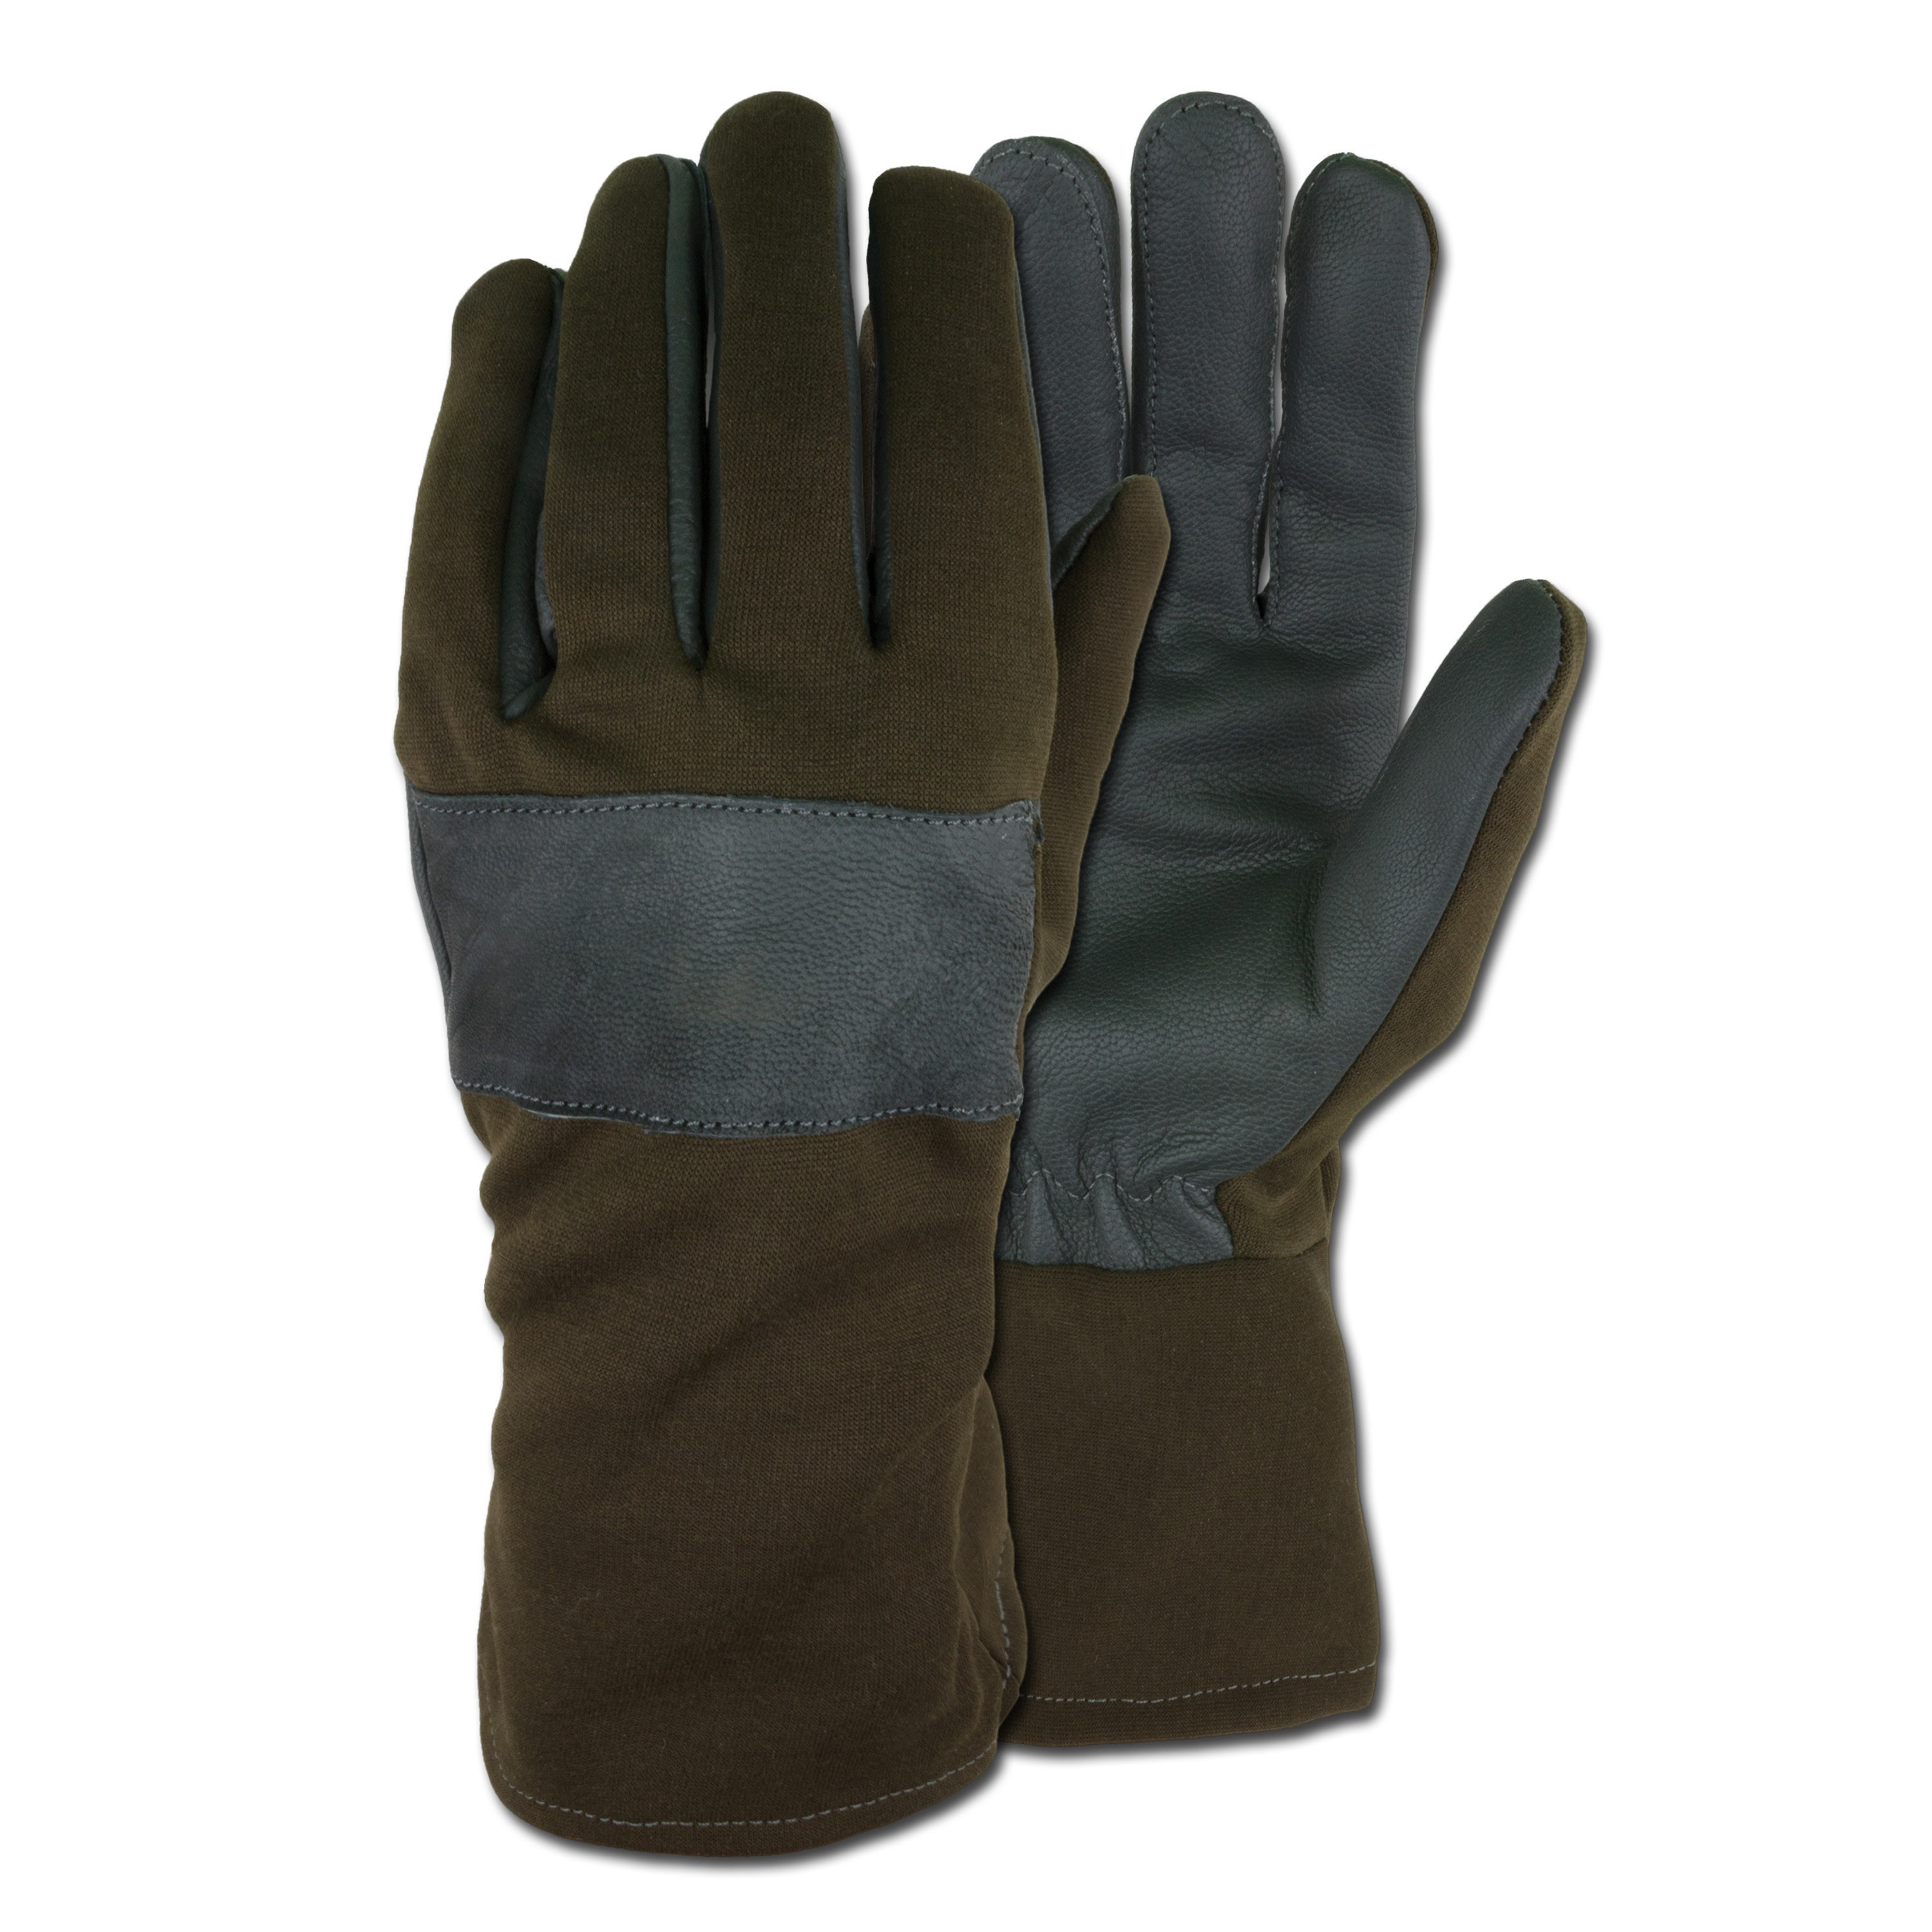 German Army Combat Gloves olive